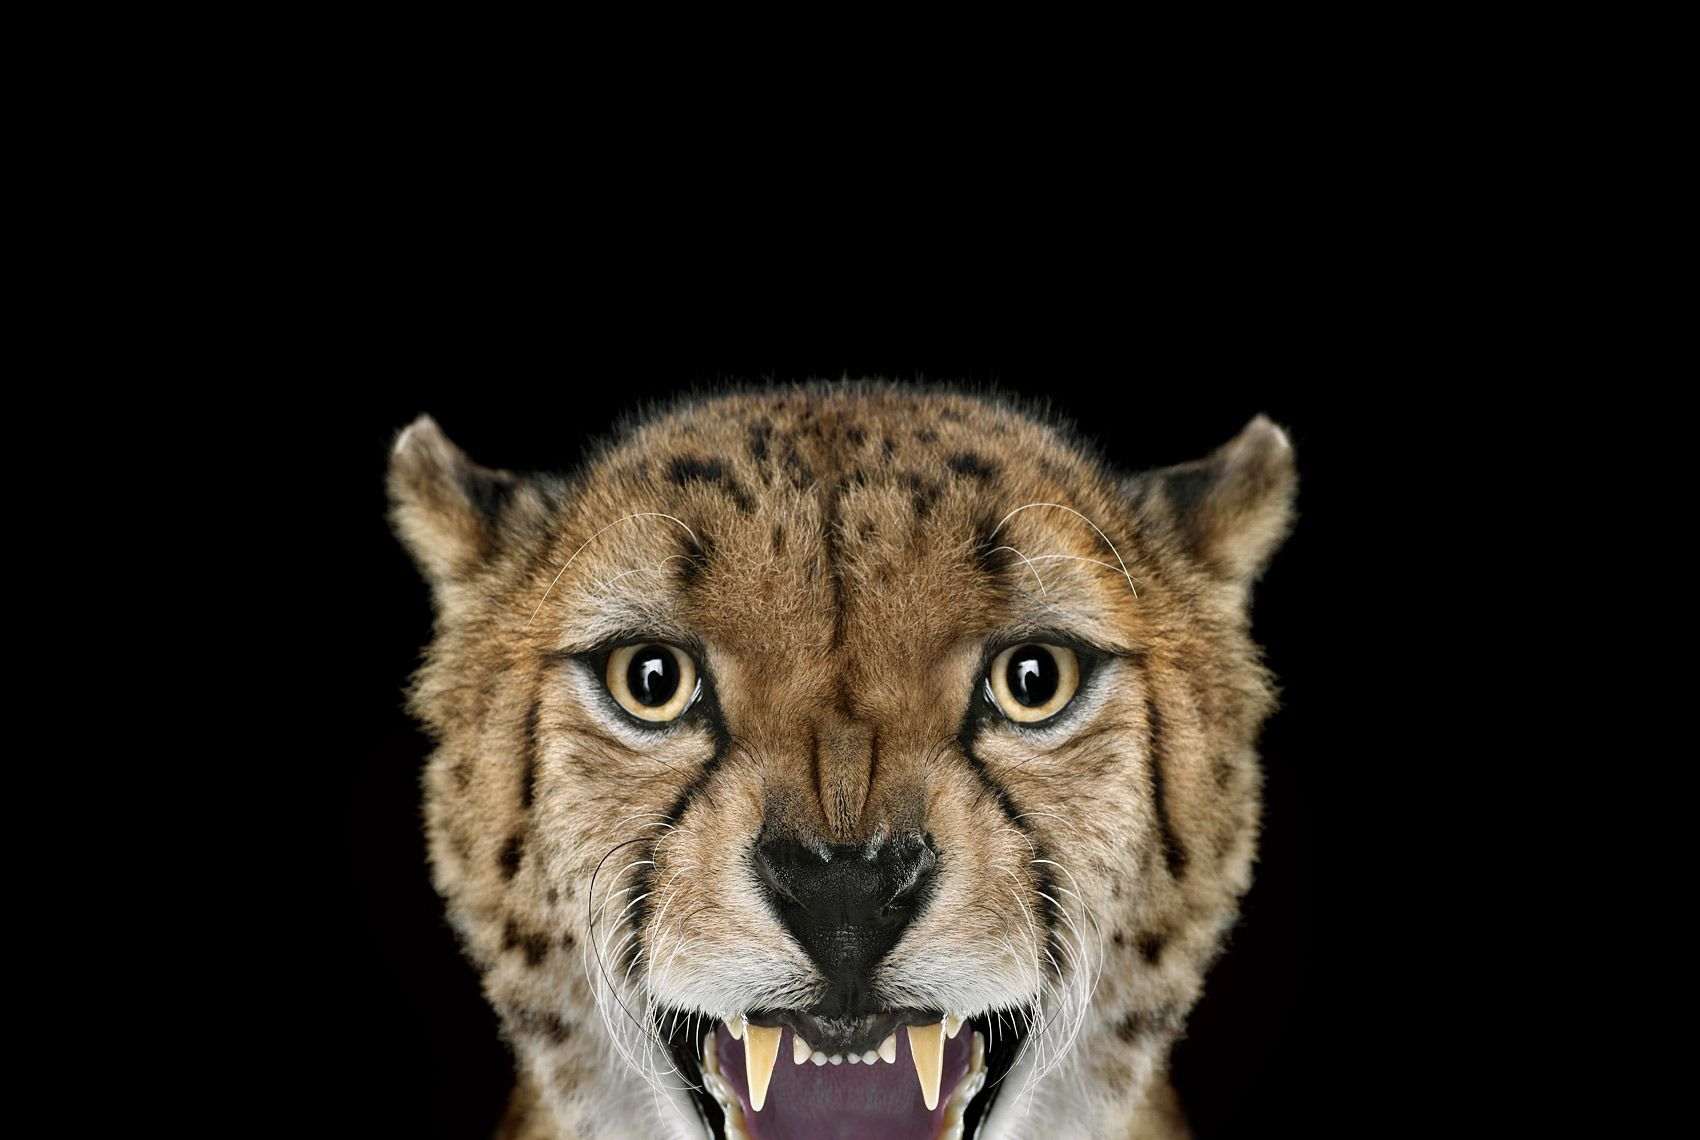 Cheetah #3, Los Angeles, CA, 2011,Brad Wilson,Photographie contemporaine